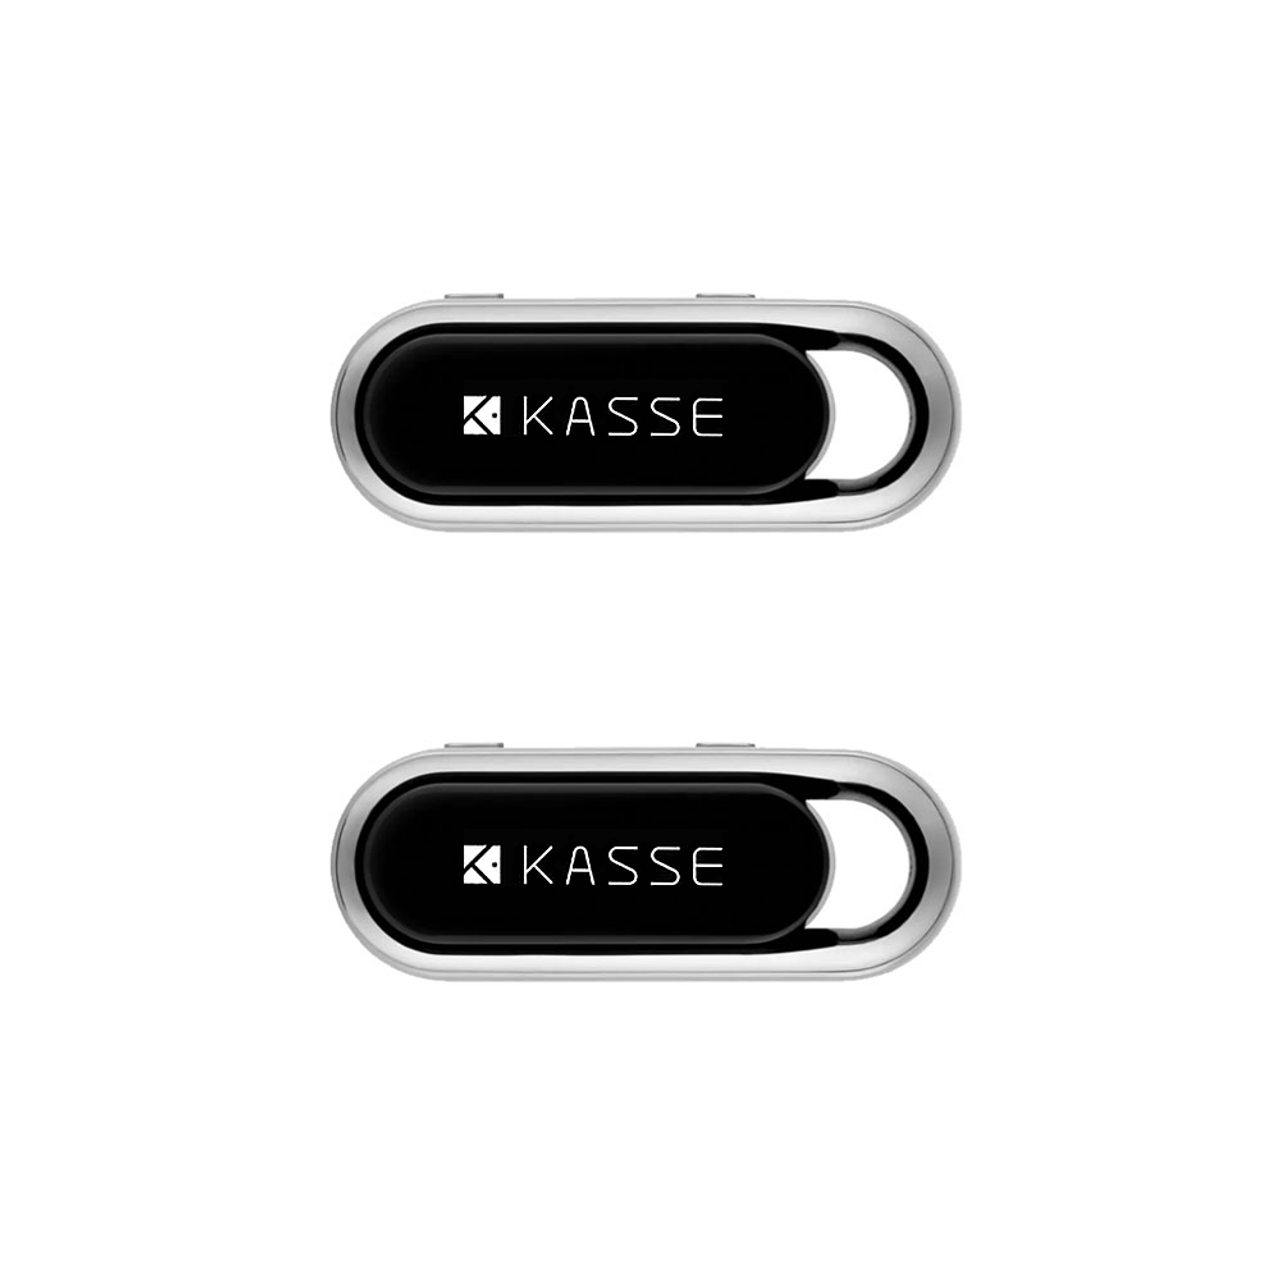 do you need hardware wallet for cryptocurrency